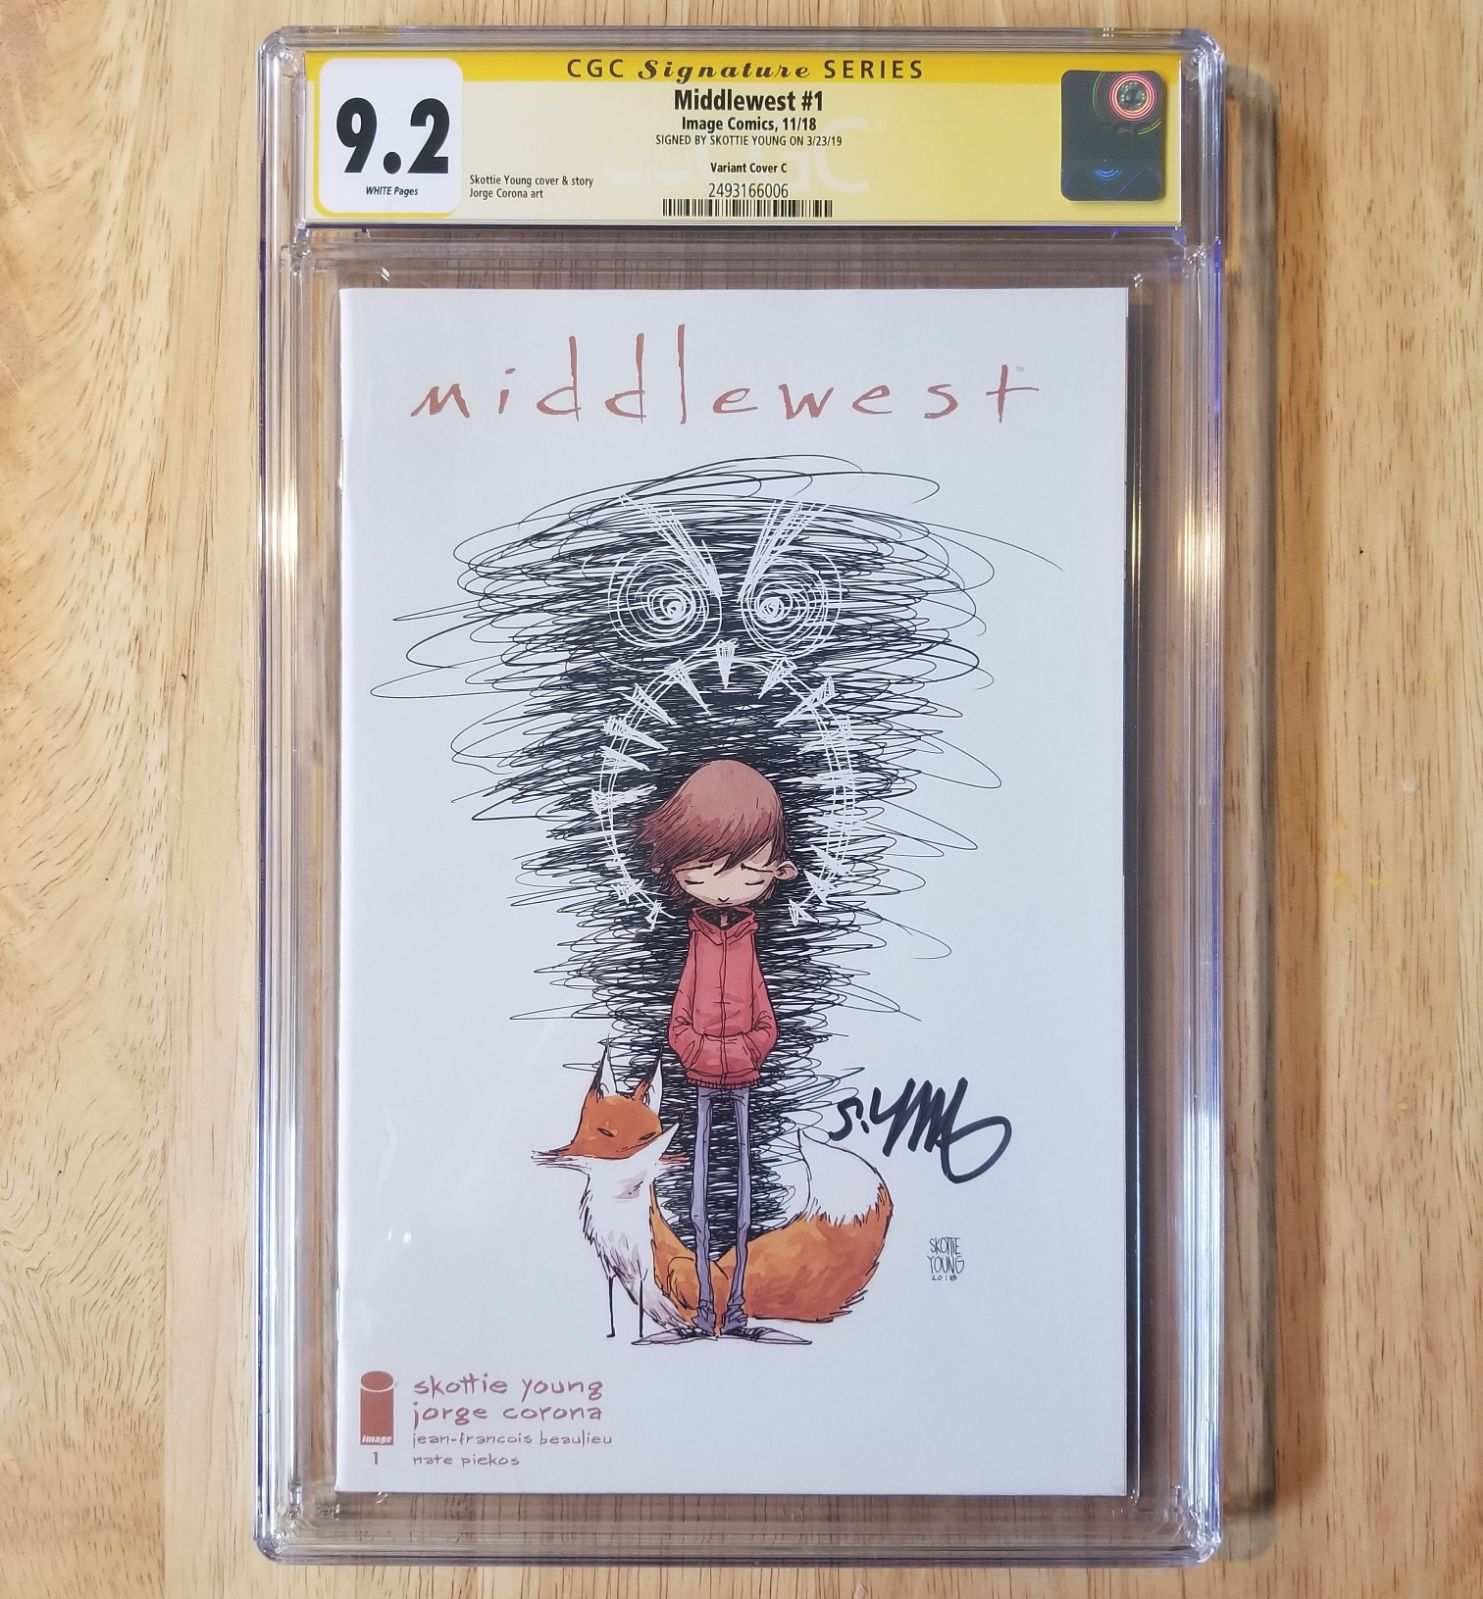 Middlewest 1 1:20 CGC SS 9.2 S. Young